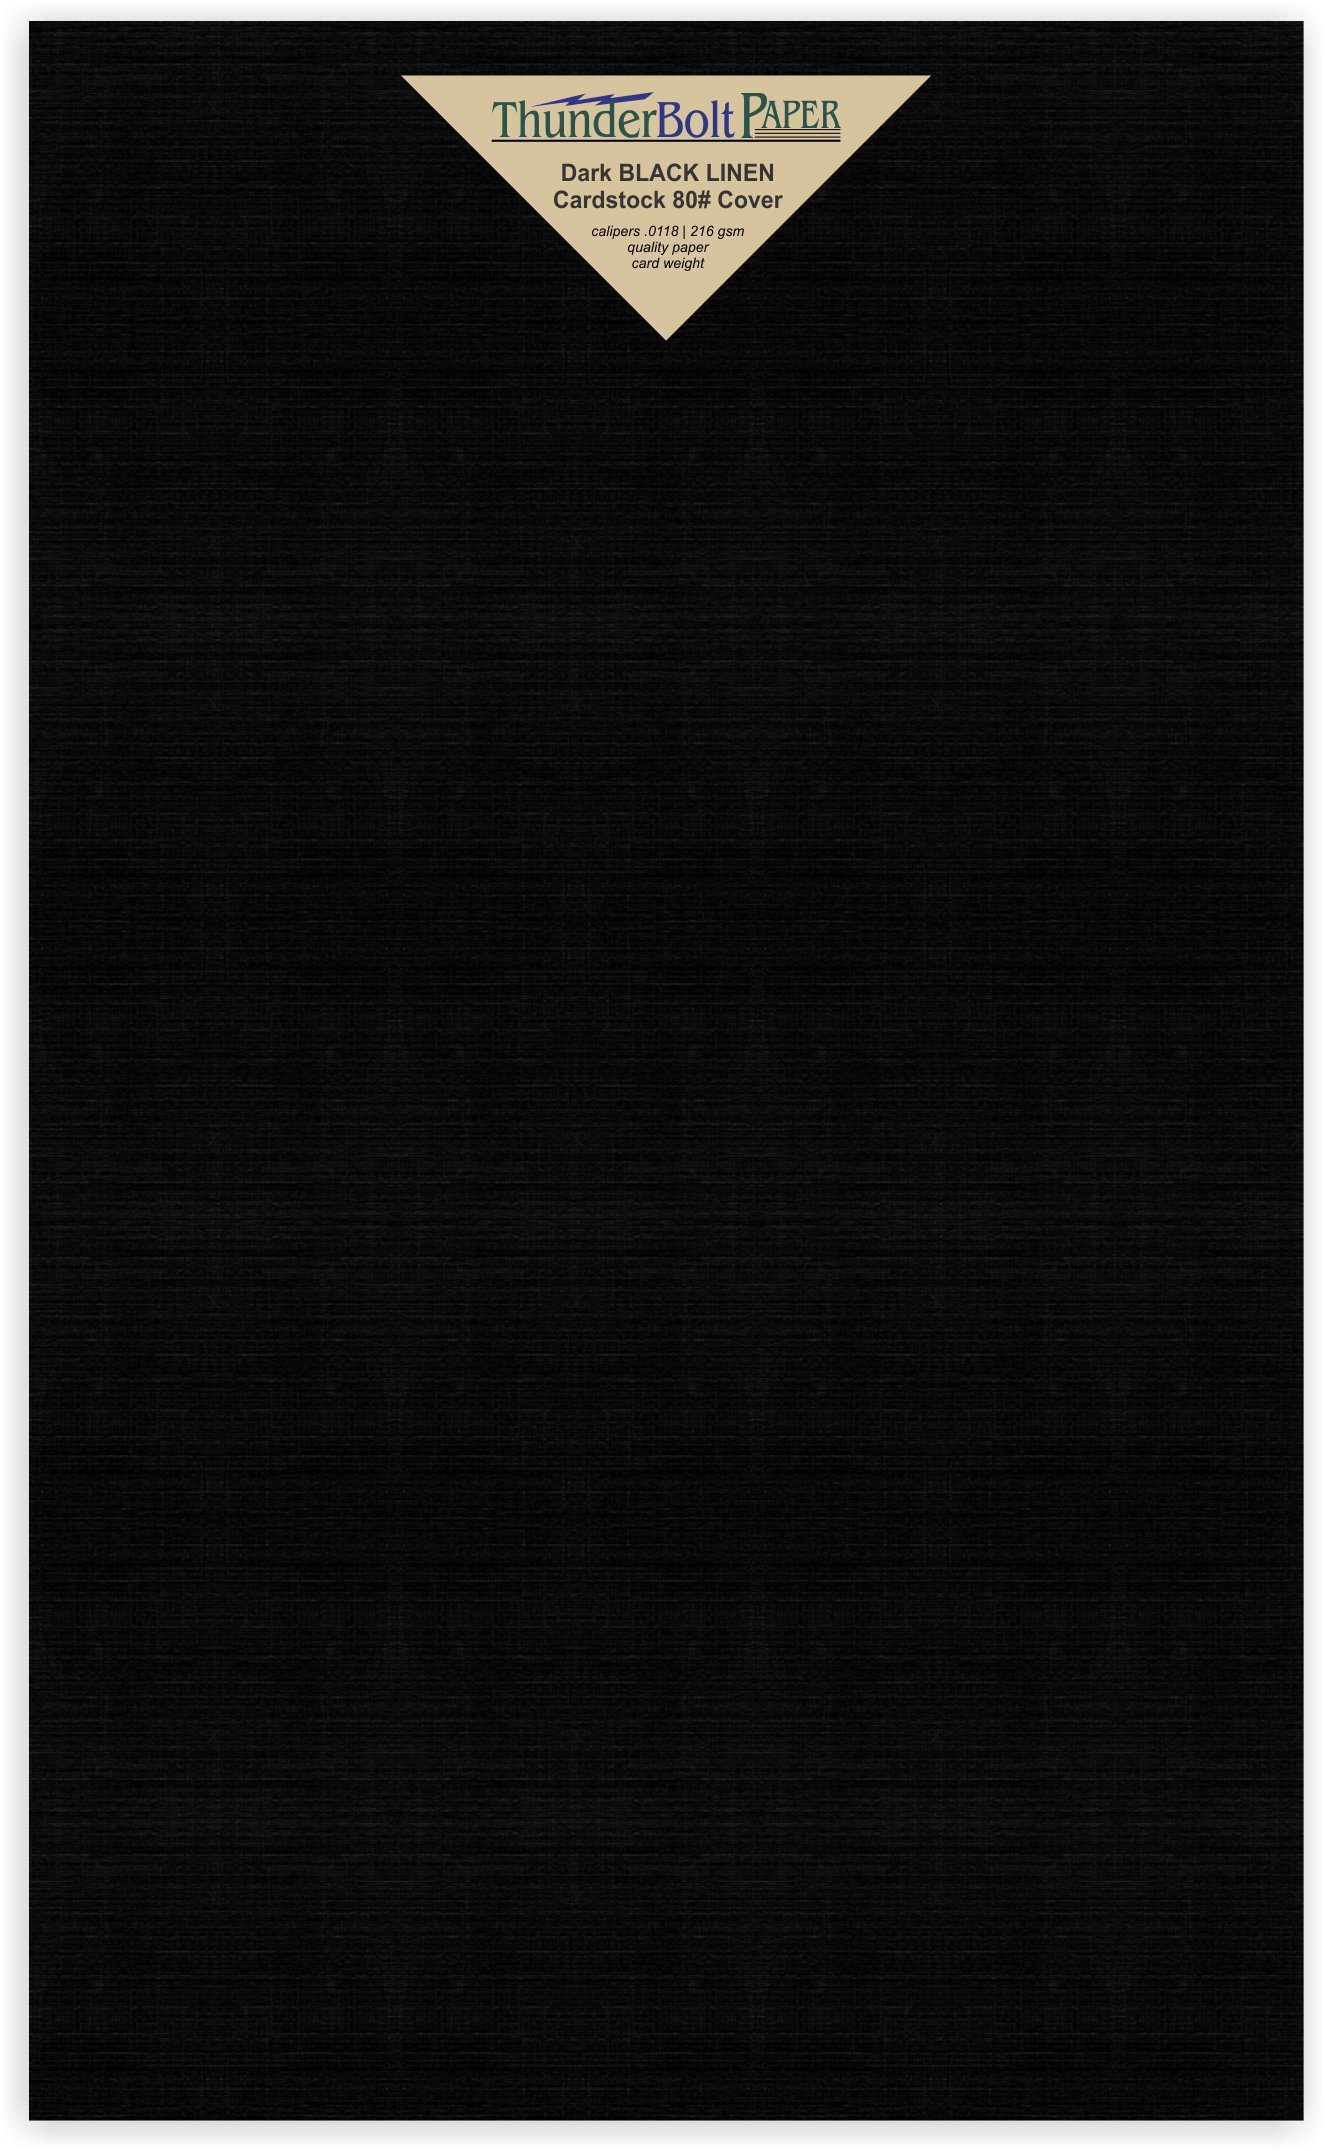 75 Black Linen 80# Cover Paper Sheets -8.5'' X 14'' (8.5X14 Inches) Legal|Menu Size - Card Weight - Deep Dye, Fine Linen Textured Finish - Quality Cardstock